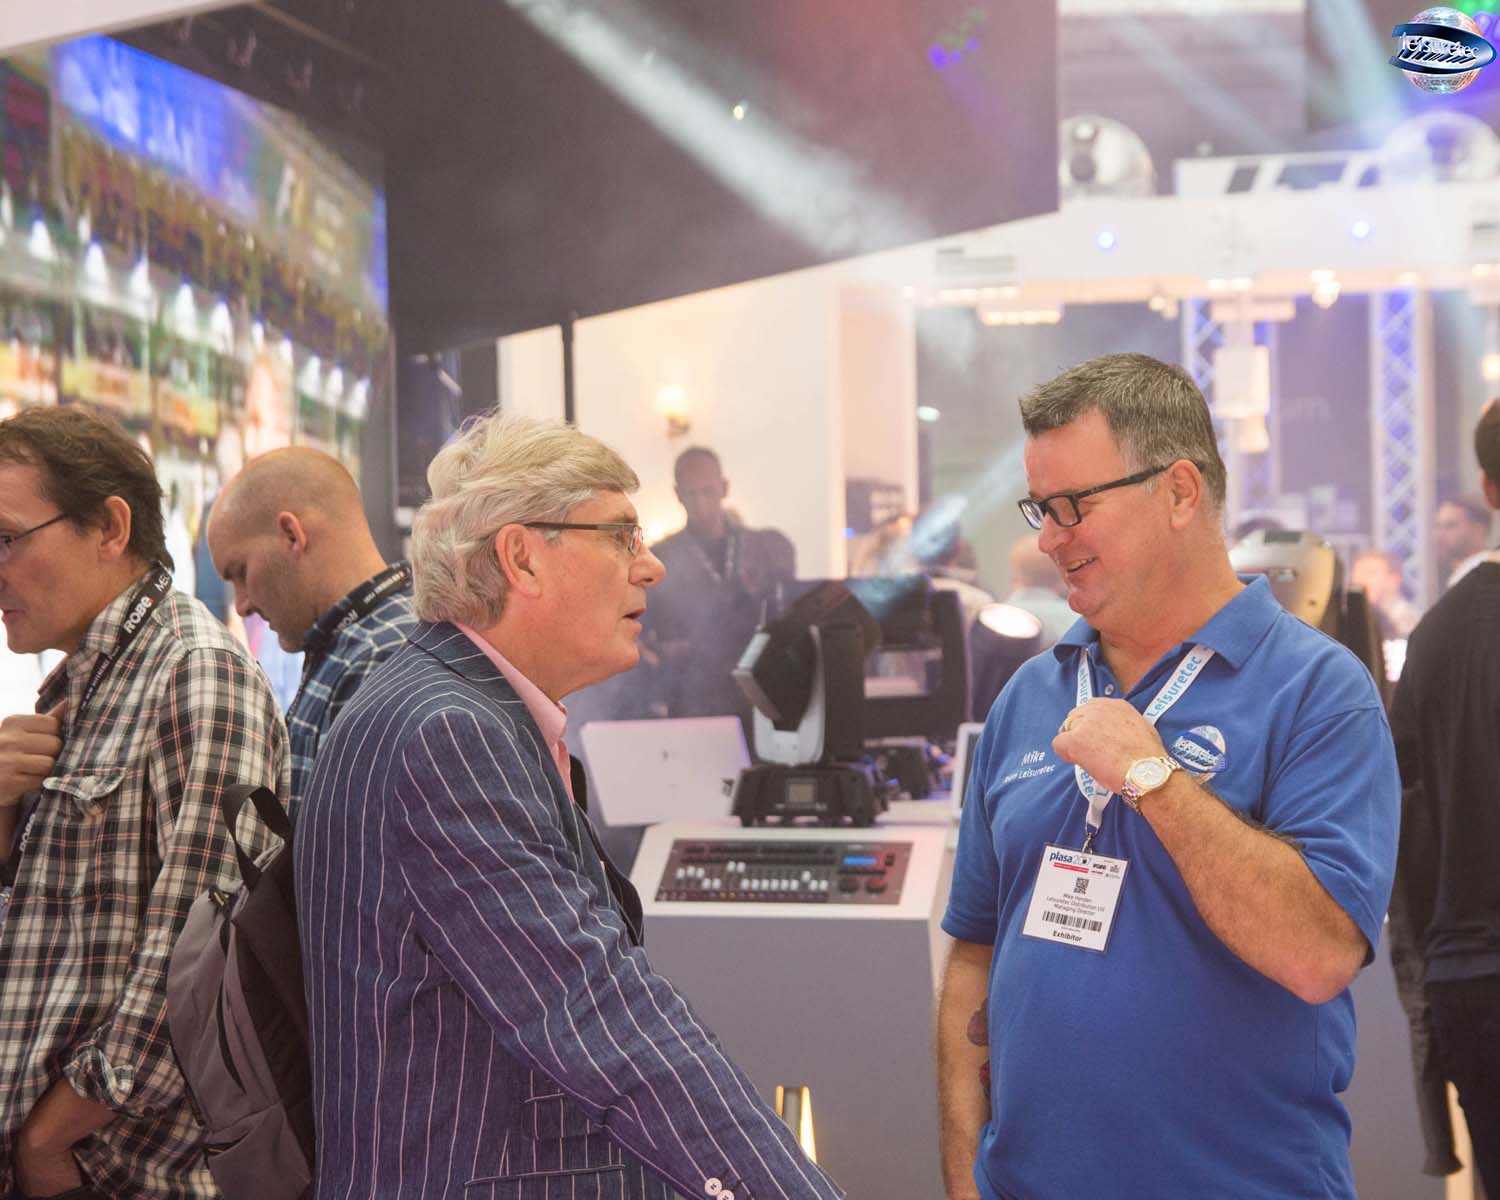 PLASA 2018 Opens Its Doors this Weekend